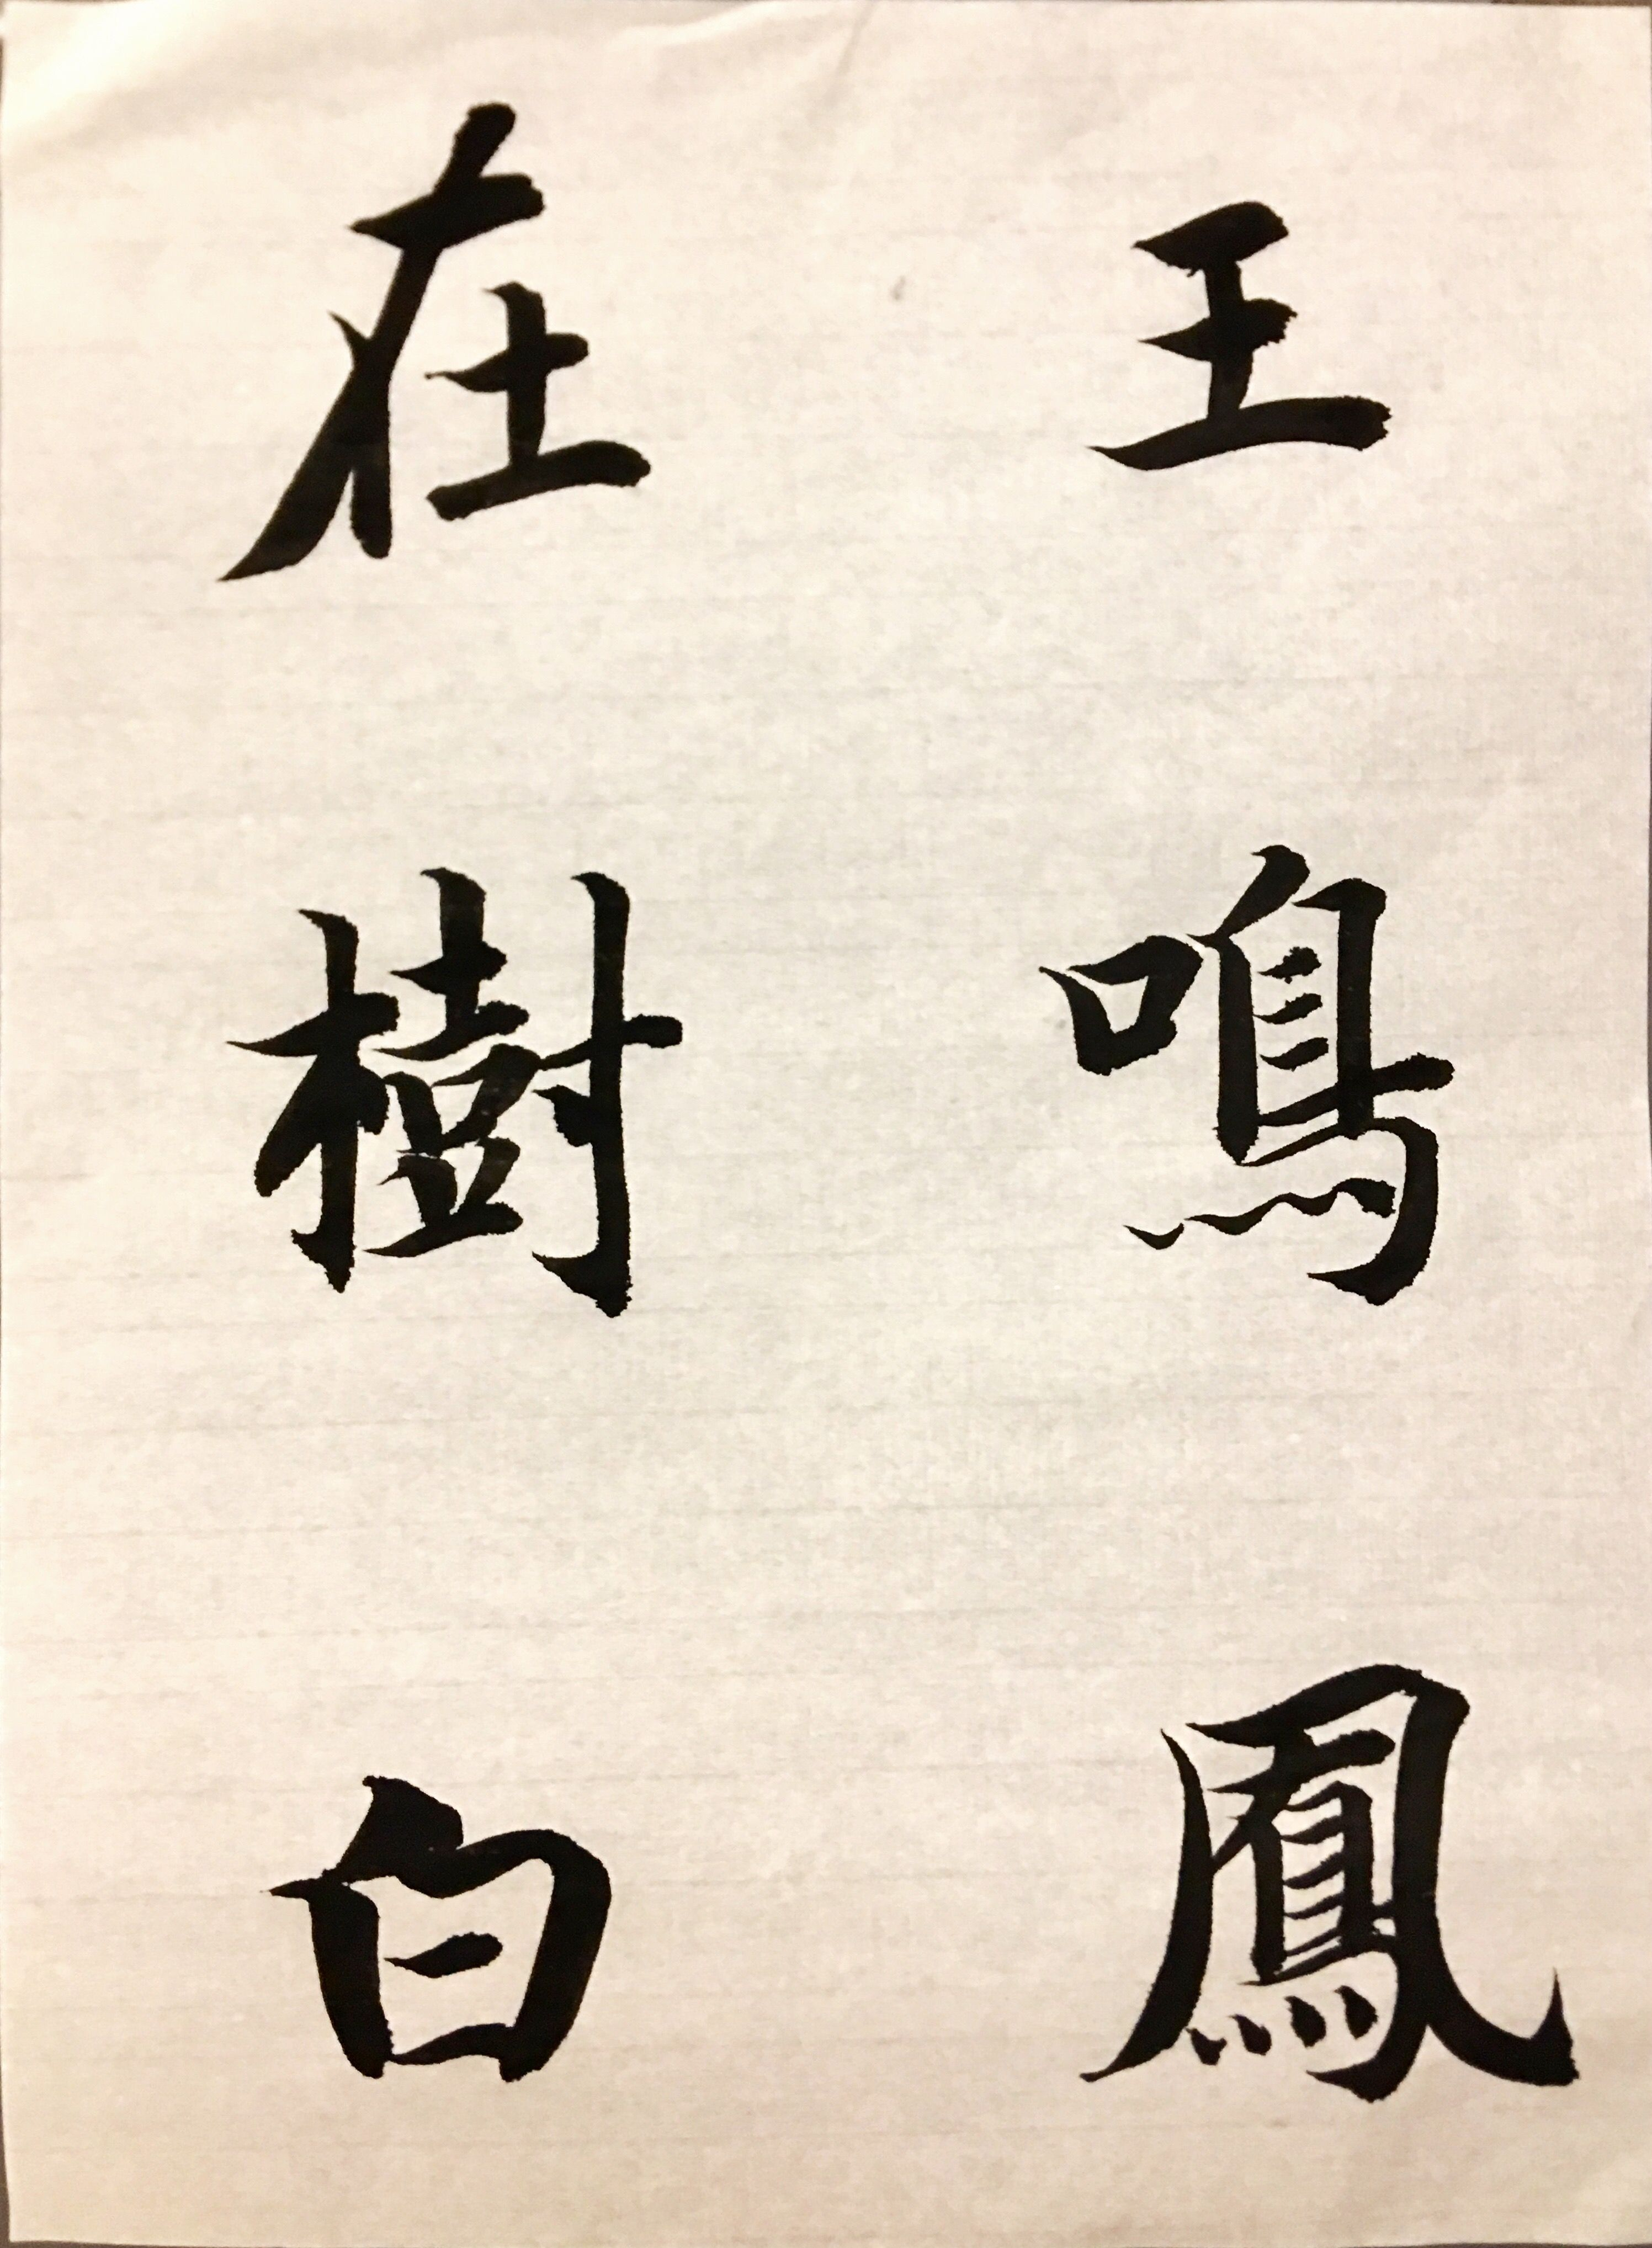 Pin by 倫斯 羅 on 書法 Art, Character, Calligraphy